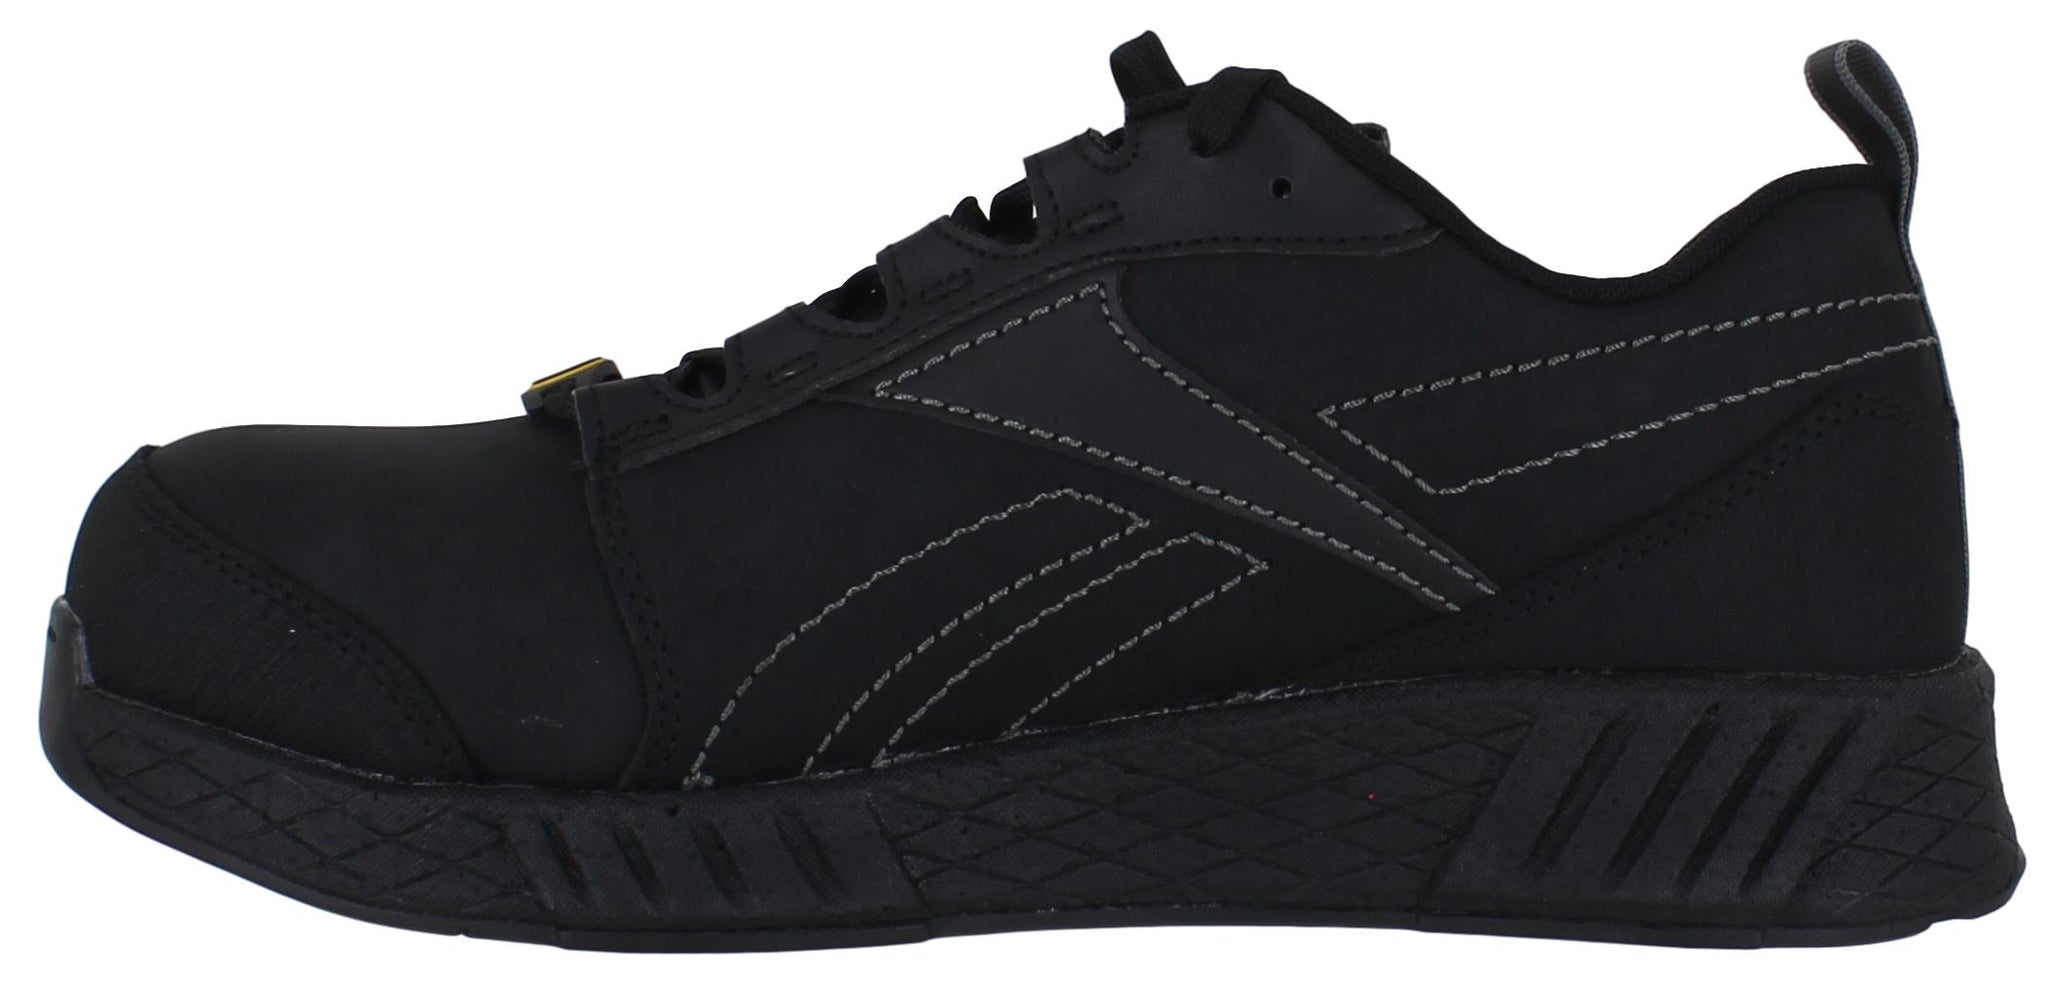 Reebok Formidable - Mens Wide Safety